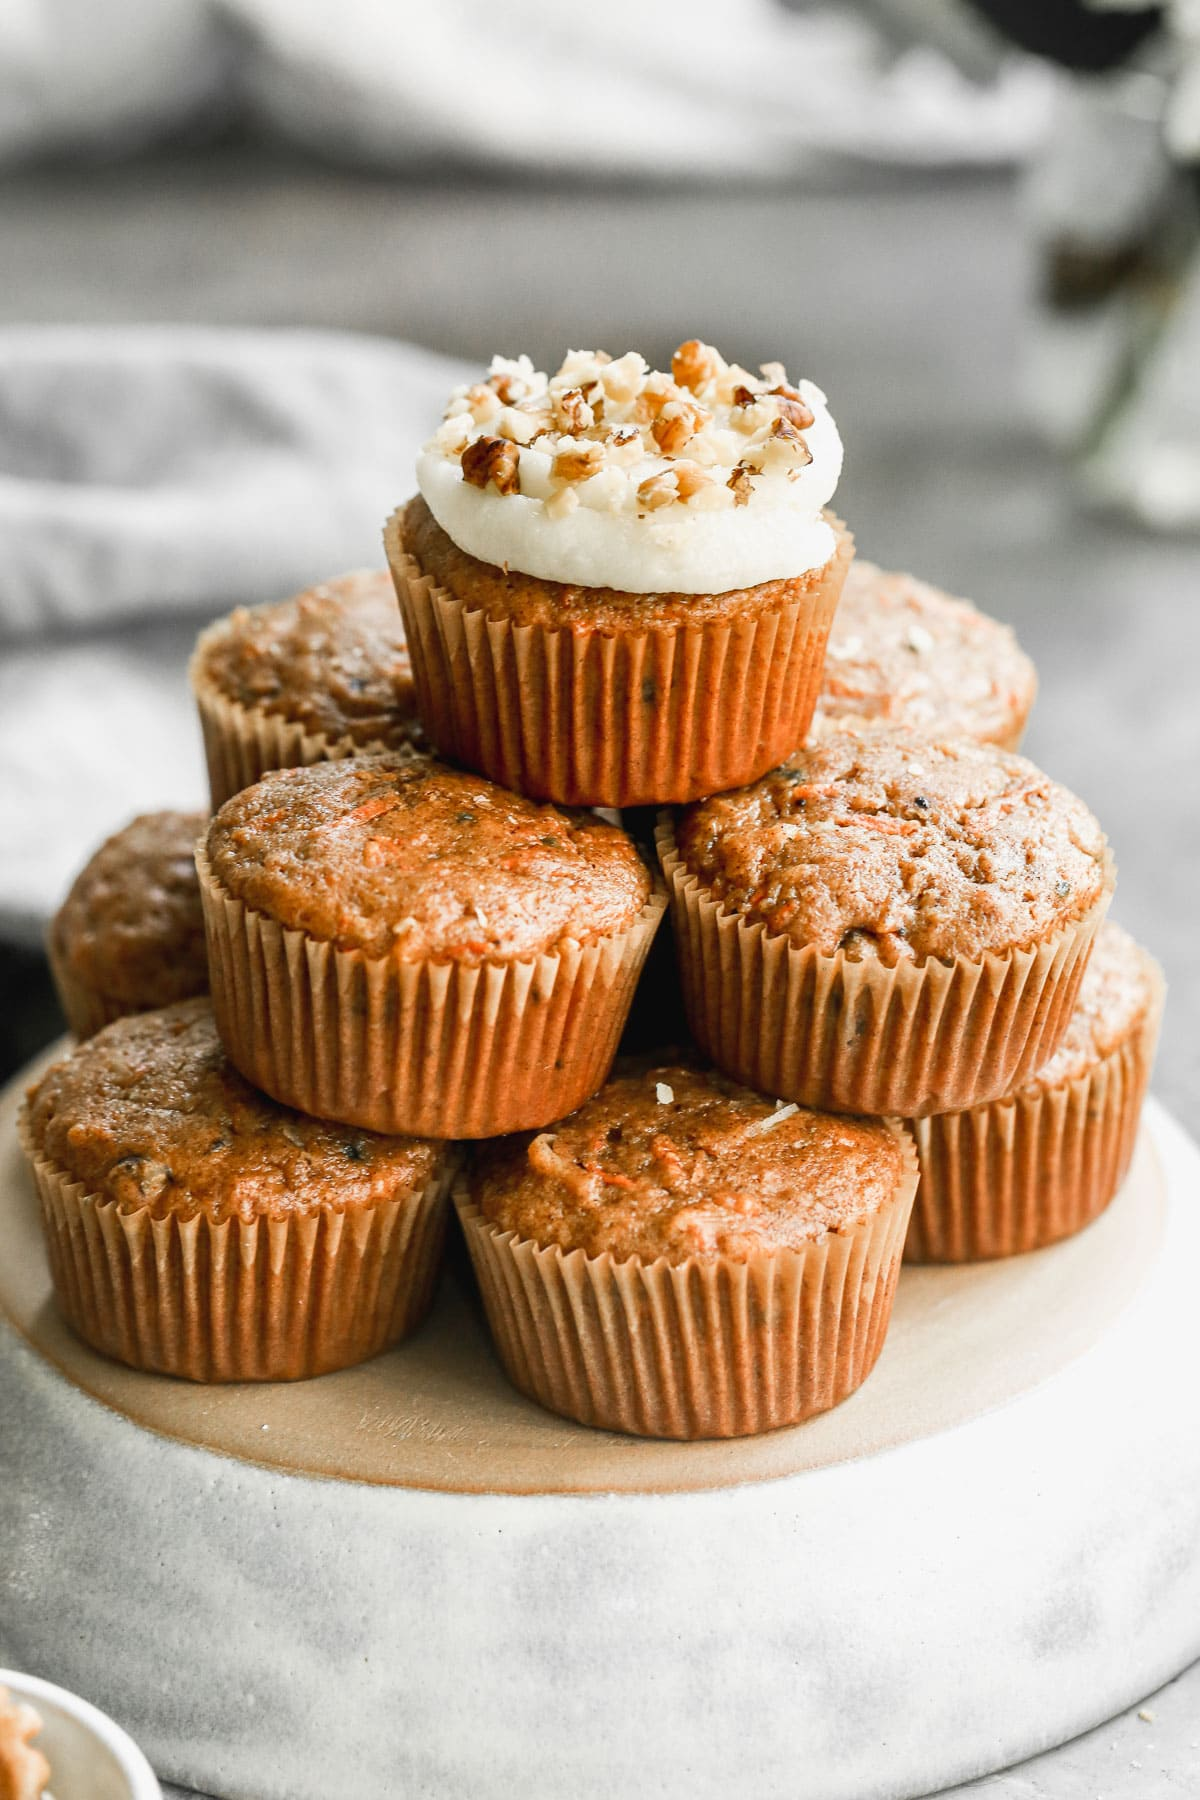 a stack of loaded carrot cake cupcakes the top cupcake is frosted with homemade cream cheese icing and chopped walnuts